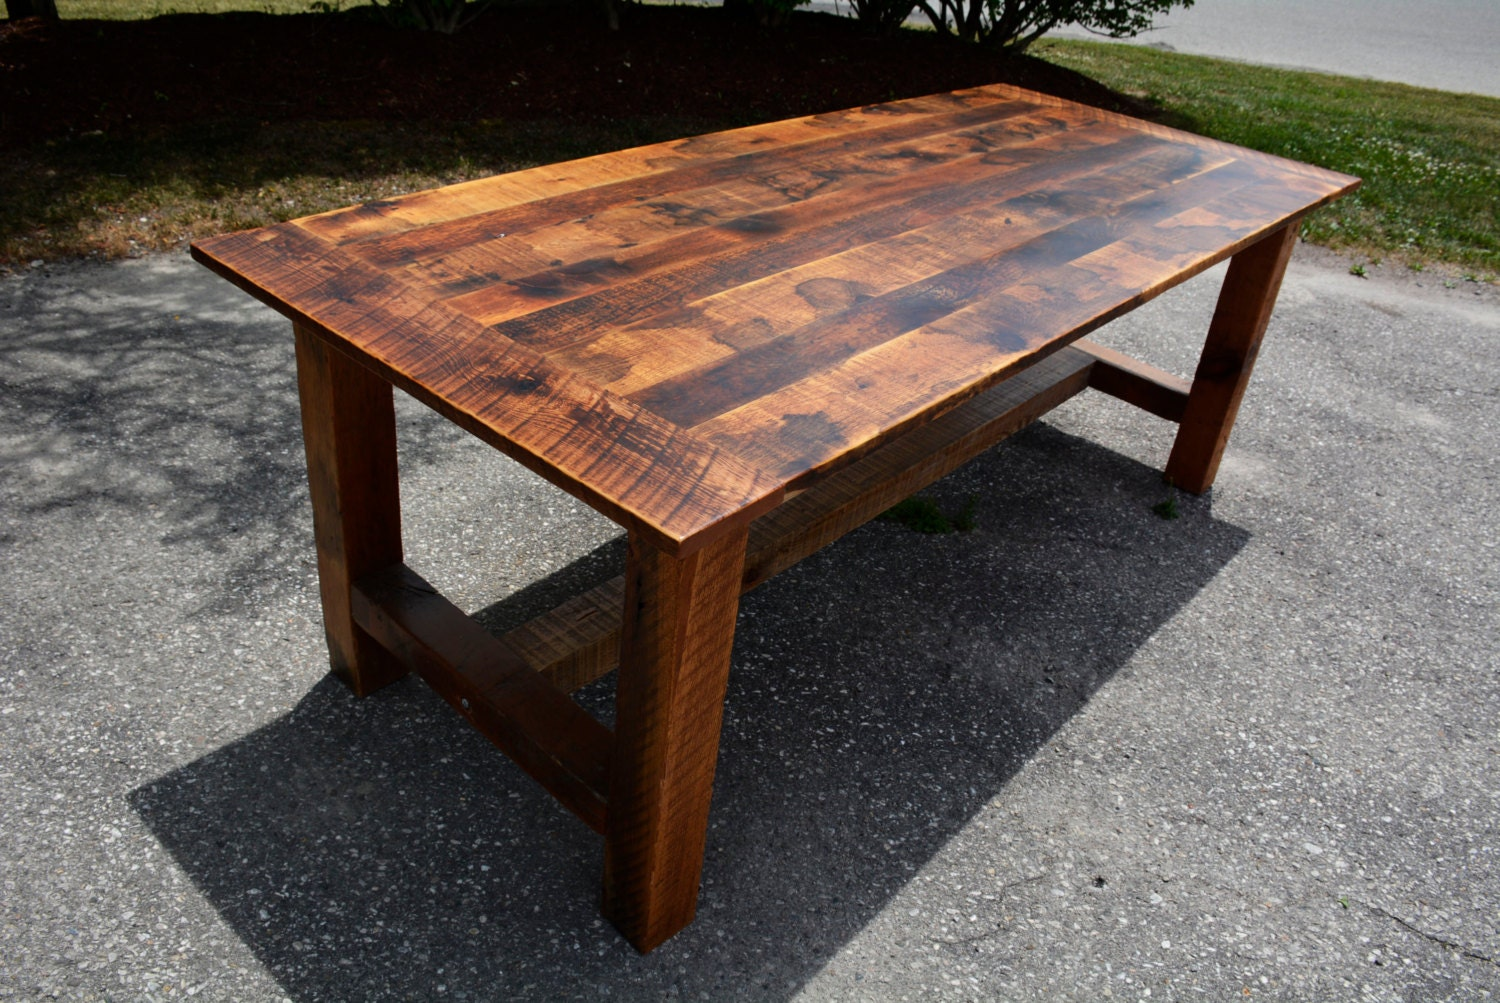 Rustic Reclaimed Barn Wood Harvest Table : ilfullxfull1009274750o33f from www.etsy.com size 1500 x 1003 jpeg 436kB